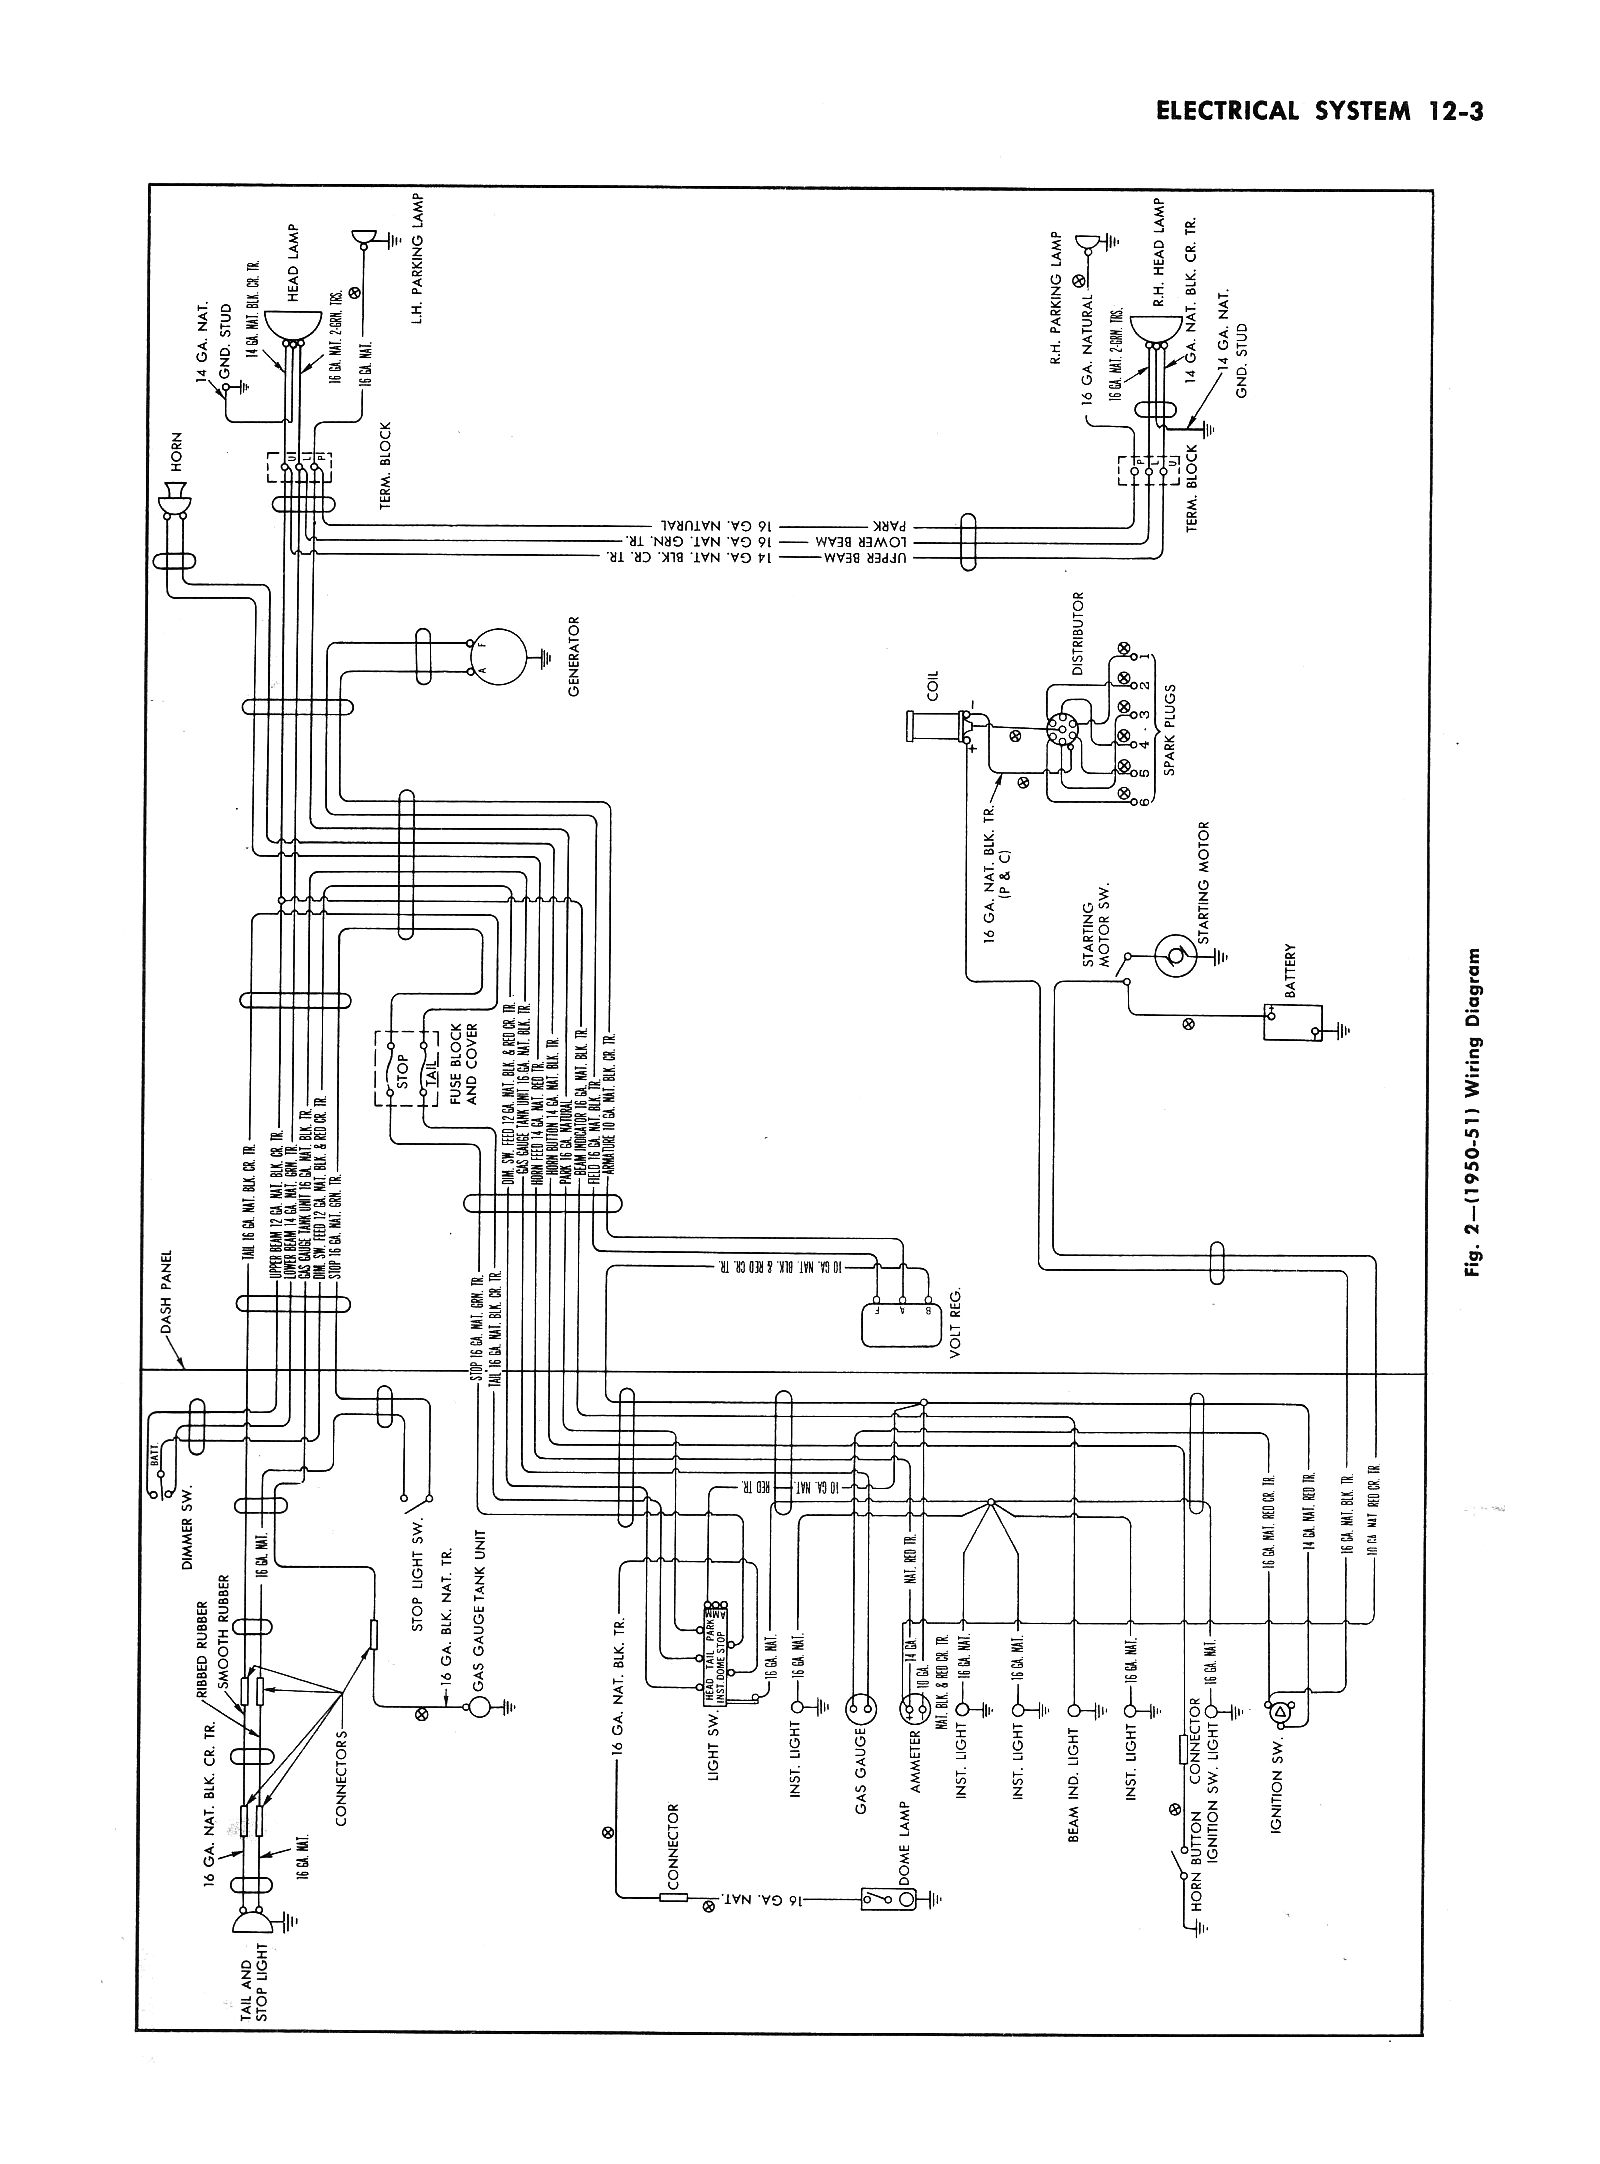 51ctsm1203 1950 chevy truck wiring harness on 1950 download wirning diagrams chevrolet truck wiring diagrams free at soozxer.org